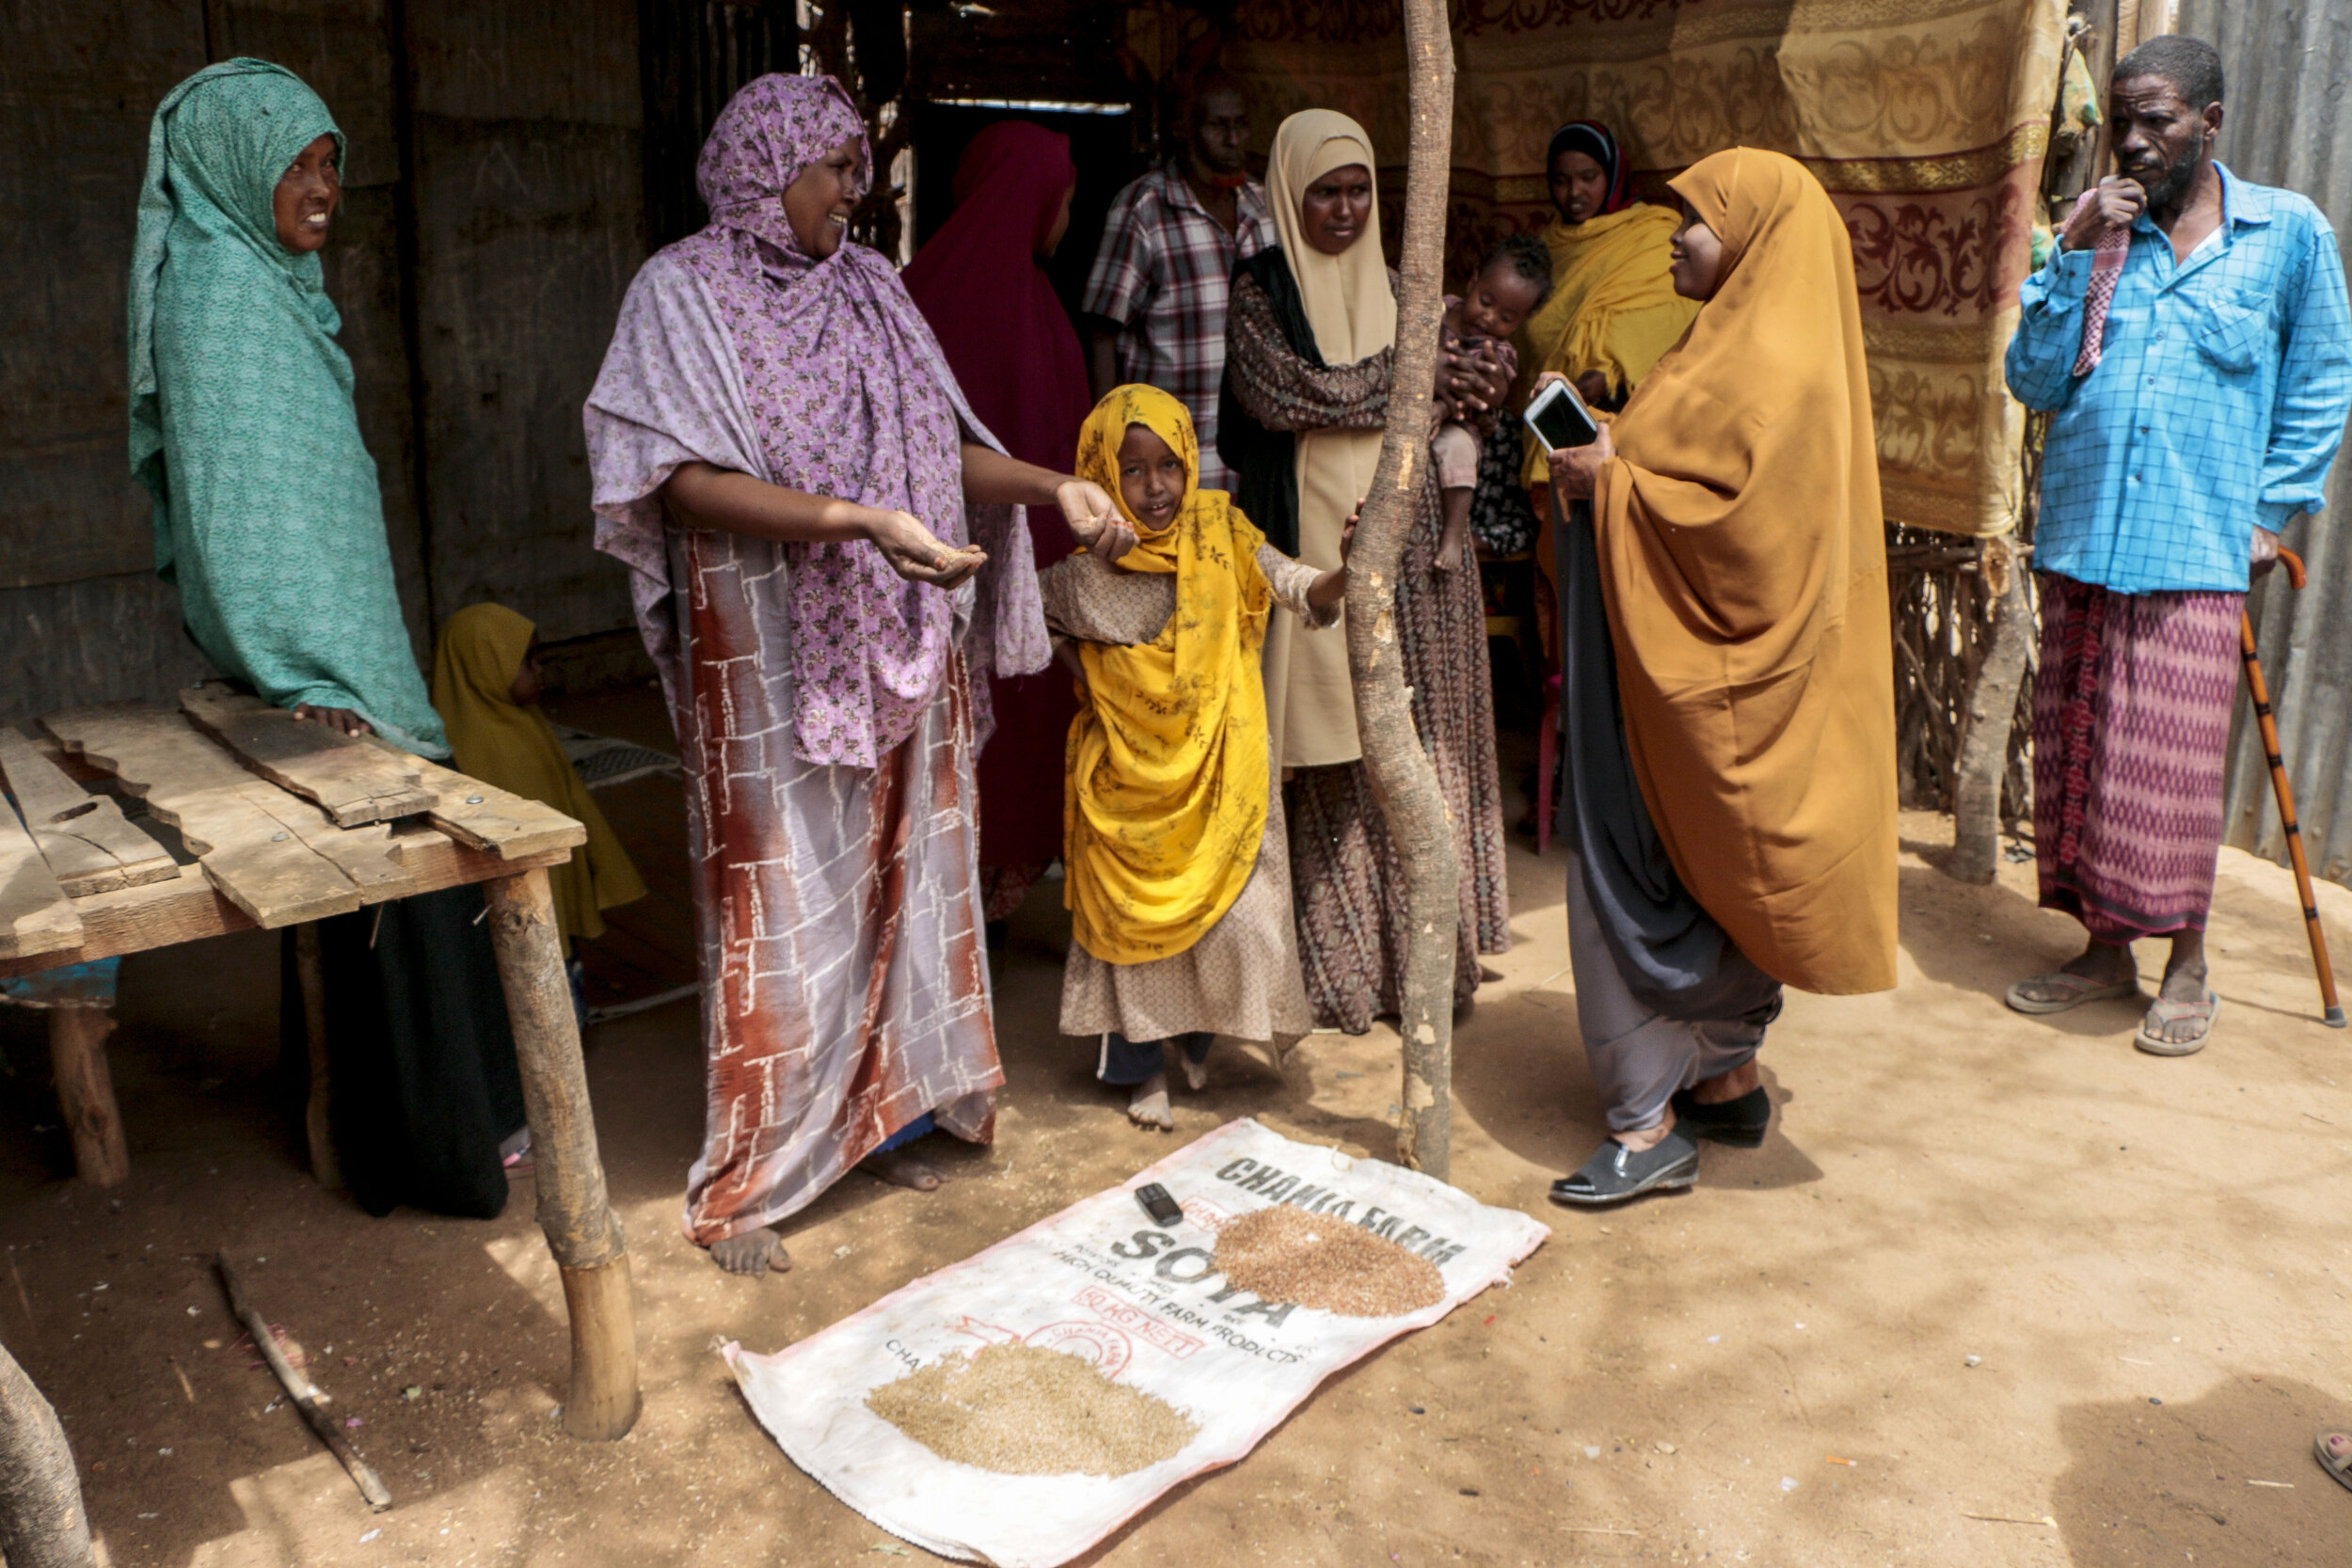 Hamdi Kosar speaks with Ruqia Osman and her family in her home Aug. 19 at the Dagahaley Refugee Camp in Dadaab, Kenya. Osman speaks about the food provided for the refugees at the camp, pictured below, and how the camp has changed over the past several years.